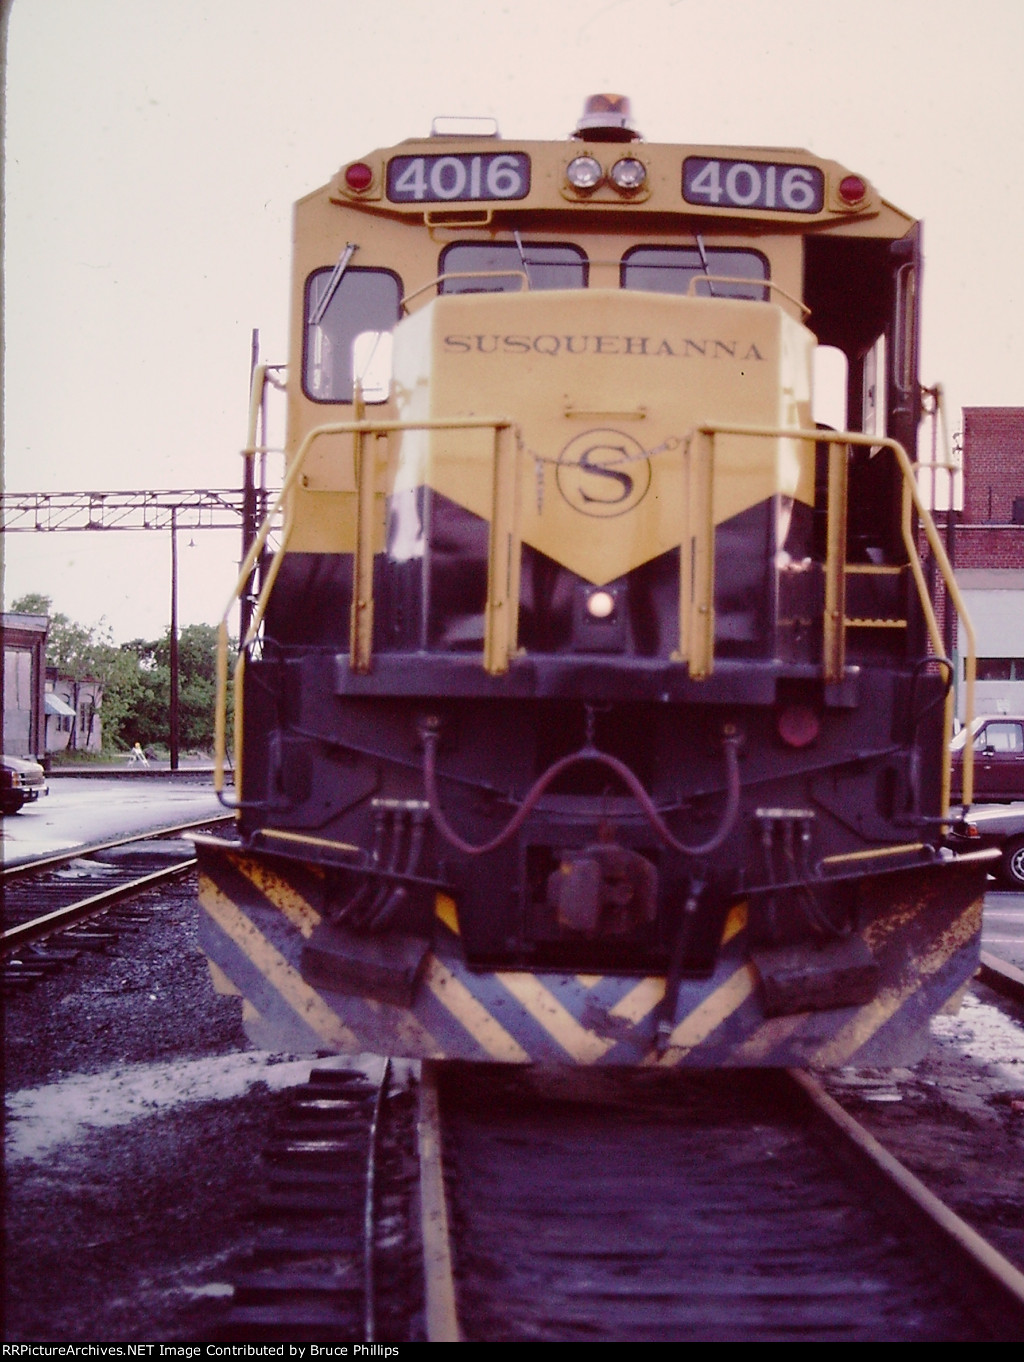 NYSW 4016 (B40-8) at Sou/NS Alexandria Yard Engine House